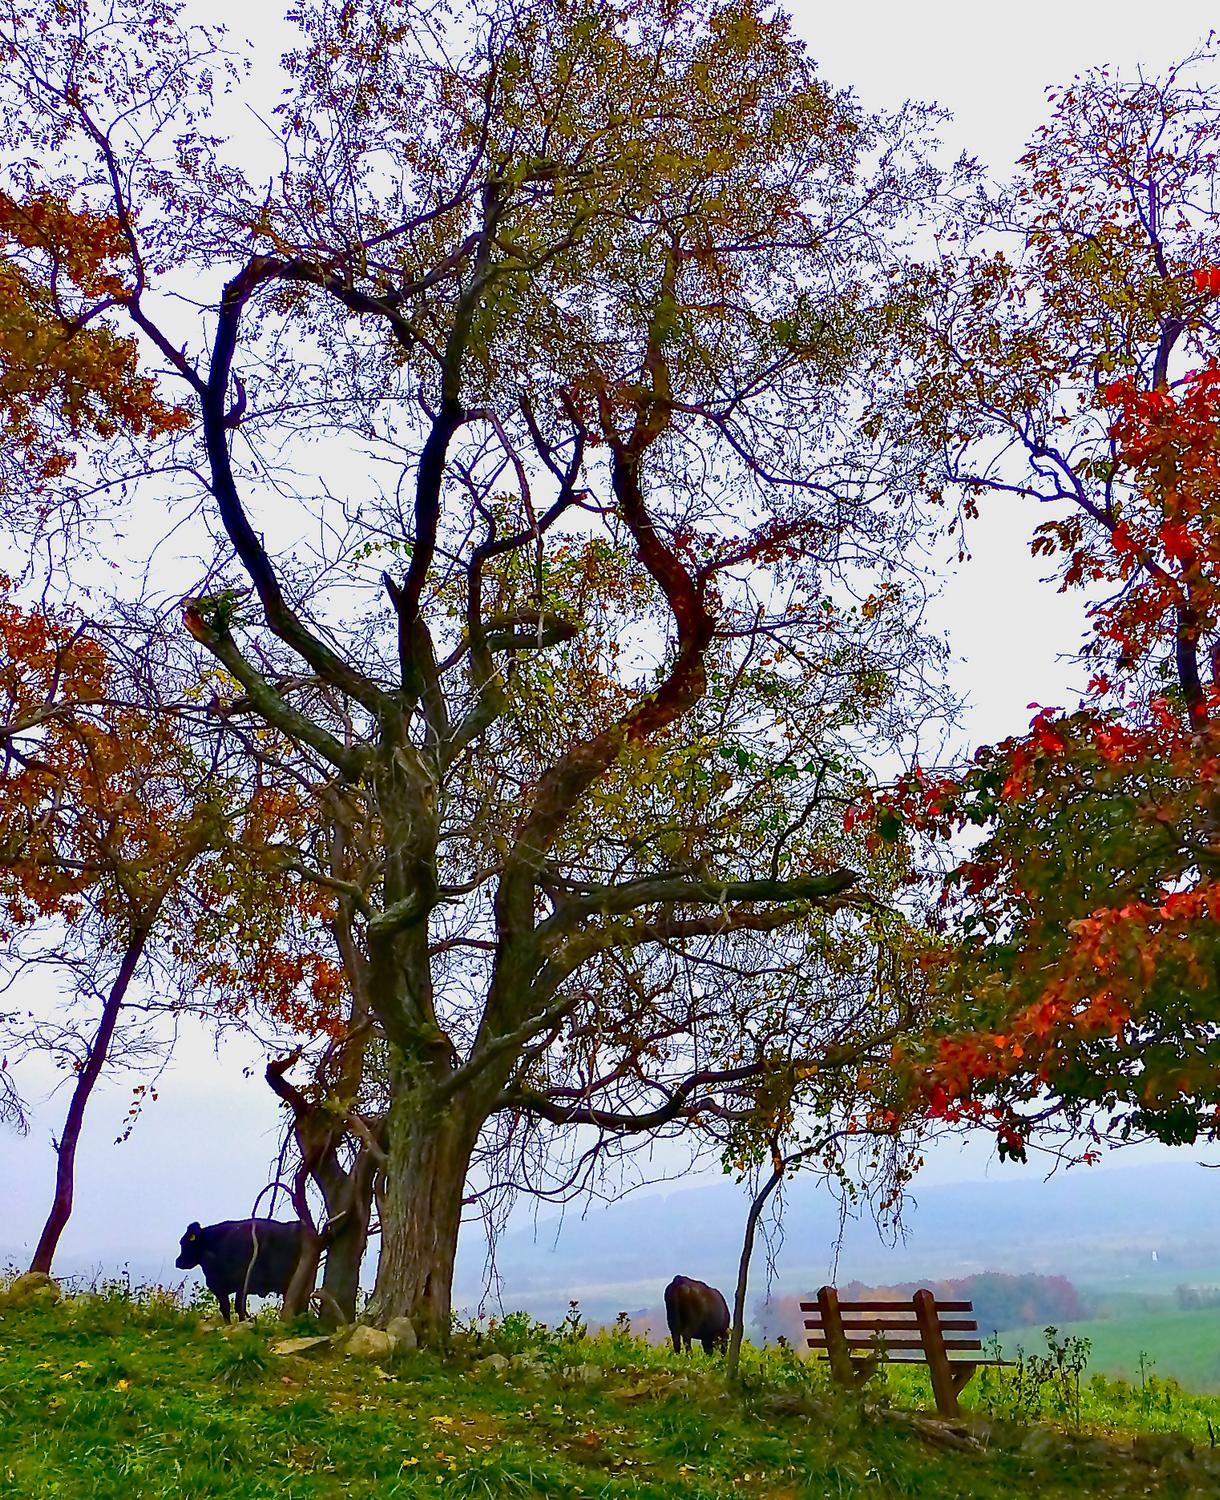 - Halfway up the hill, there's a bench where you can sit to enjoy the view <br>--- Click to see ORIGINAL --- - Sky Meadows State park - Virginia - Cows - Panasonic DMC-ZS20 - Tony Karp, design, art, photography, techno-impressionist, techno-impressionism, aerial photography , drone , drones , dji , mavic pro , video , 3D printing - Books -